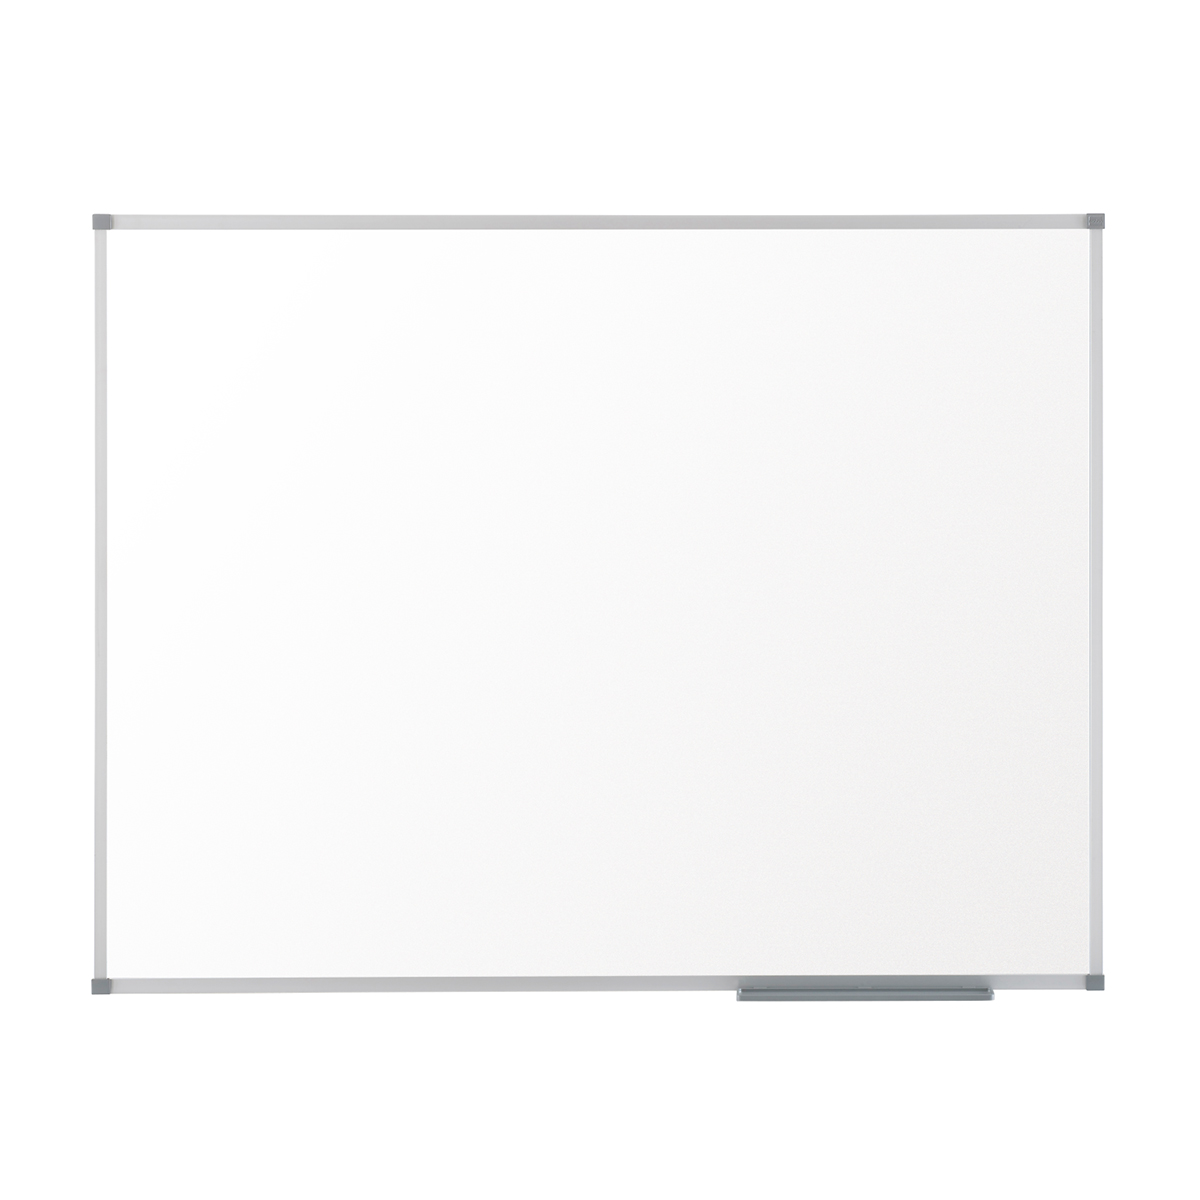 Nobo 1905213 Basic Steel Magnetic Whiteboard 1800 x 1200mm